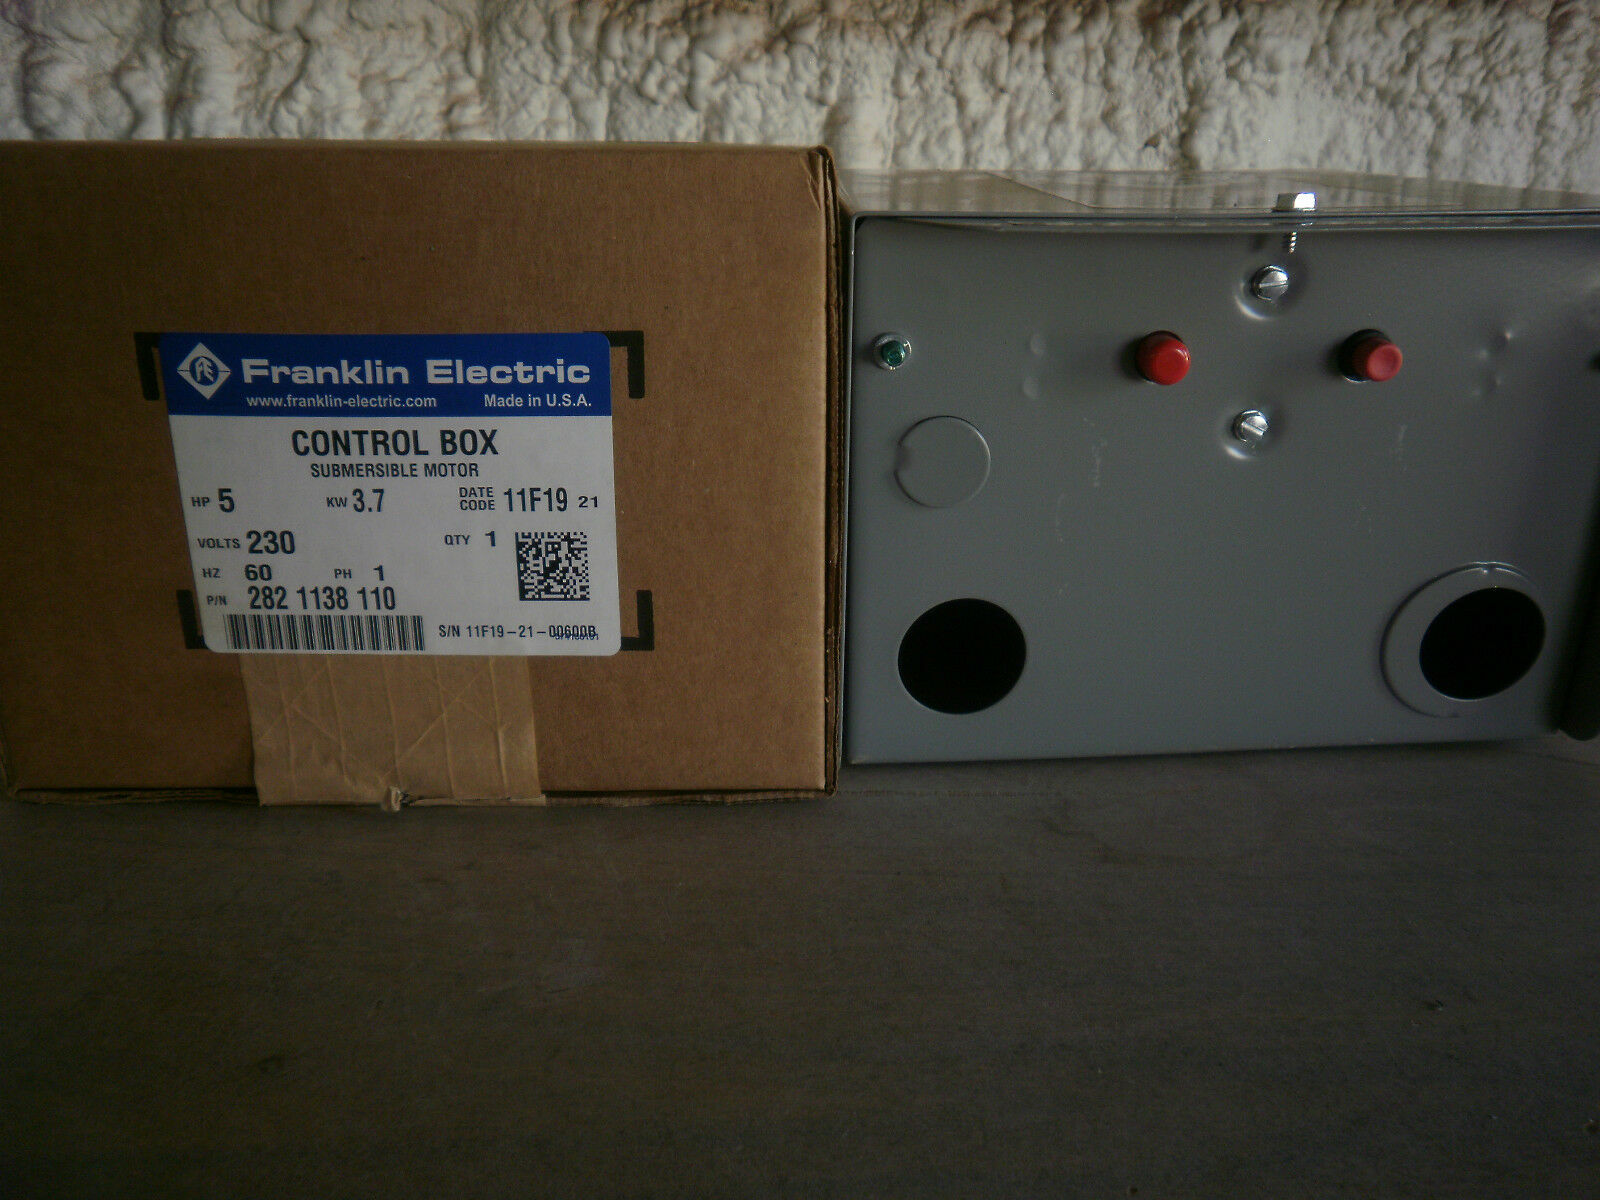 5 Hp Franklin Electric Submersible Motor Control Box 28000 Qd 1 Of 6